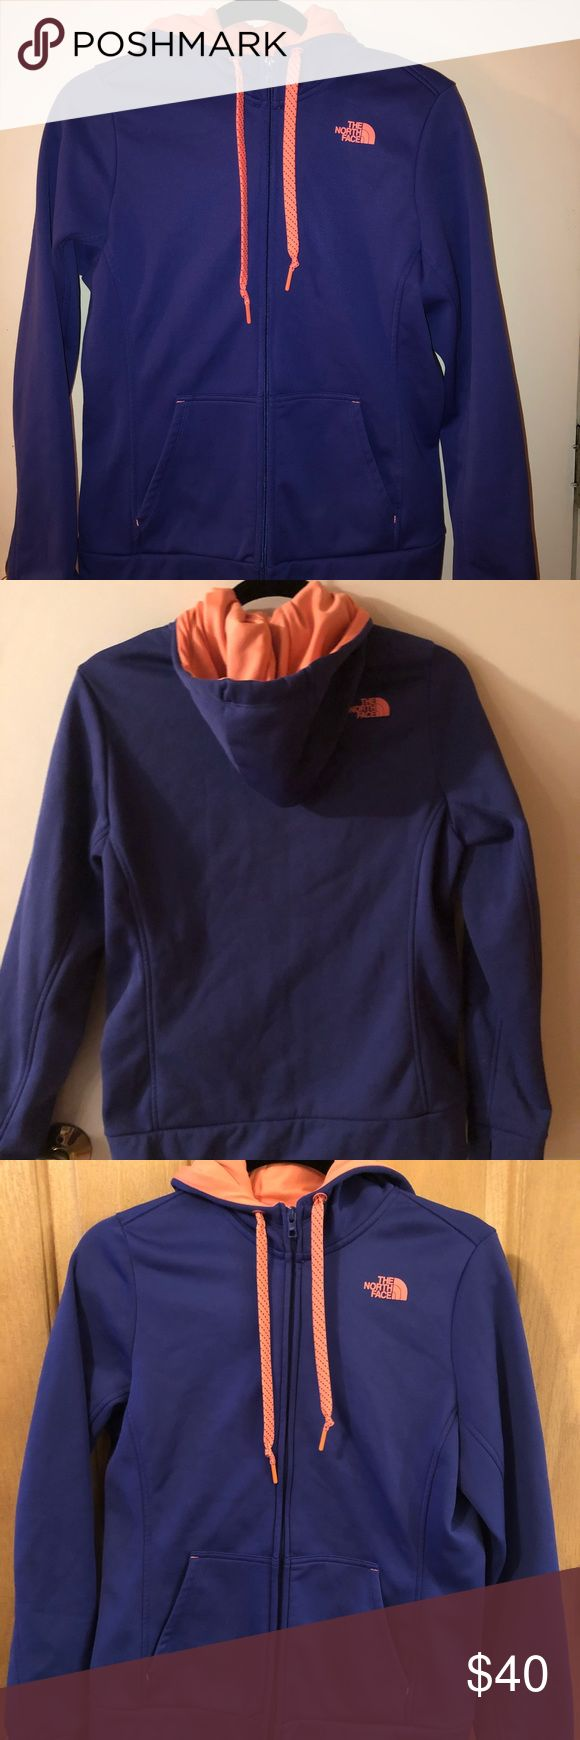 North Face Ladies Jacket—Size Medium Violet Blue and Coral Ladies North Face Jacket—Size Medium The North Face Jackets & Coats